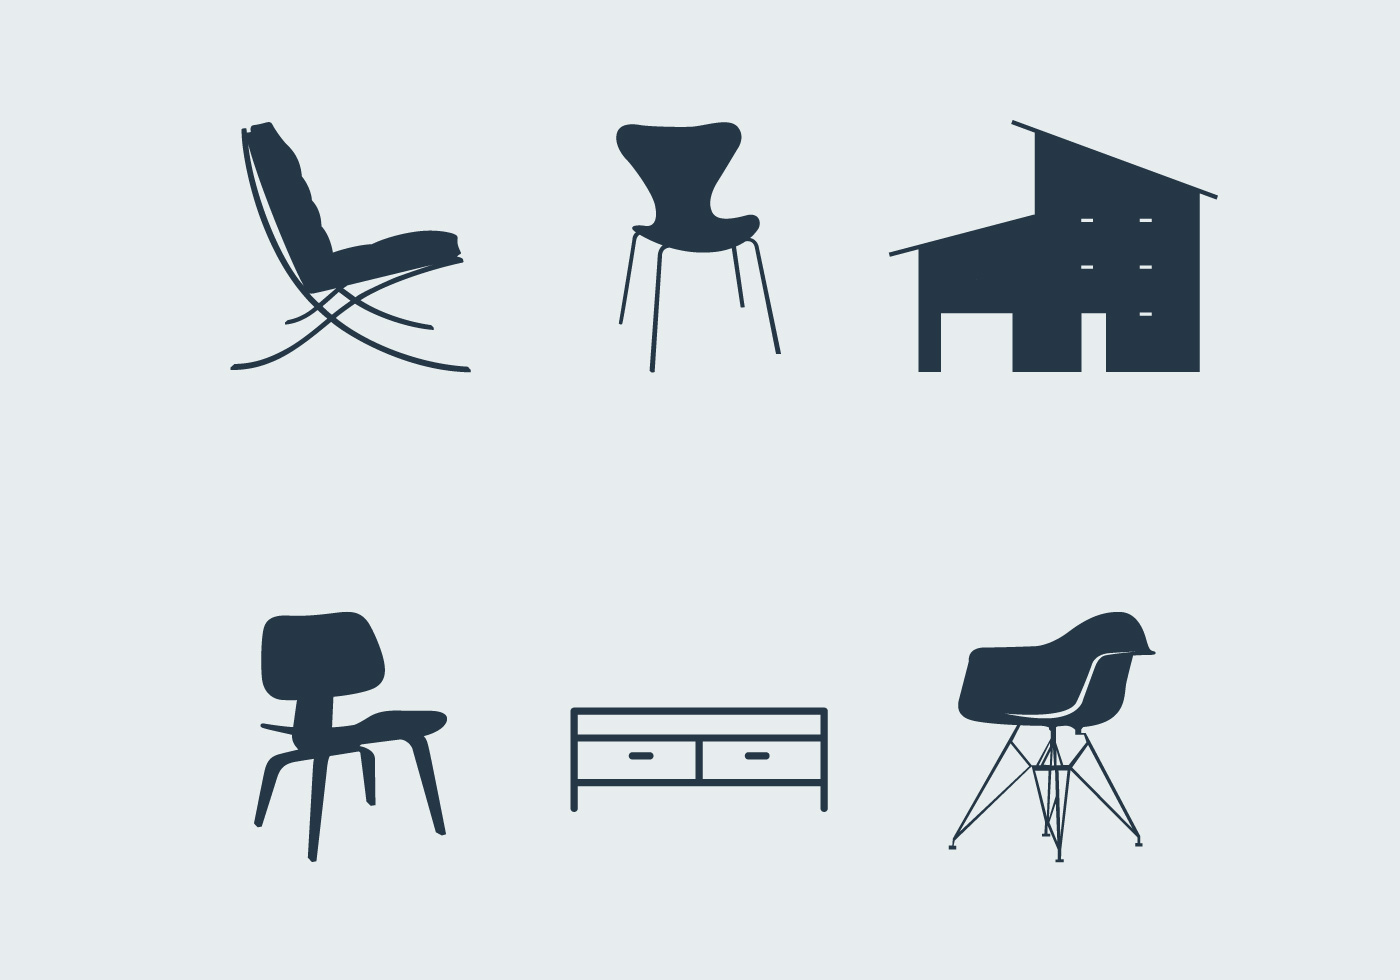 White Plastic Lawn Chairs Midcentury modern furniture - Download Free Vector Art ...